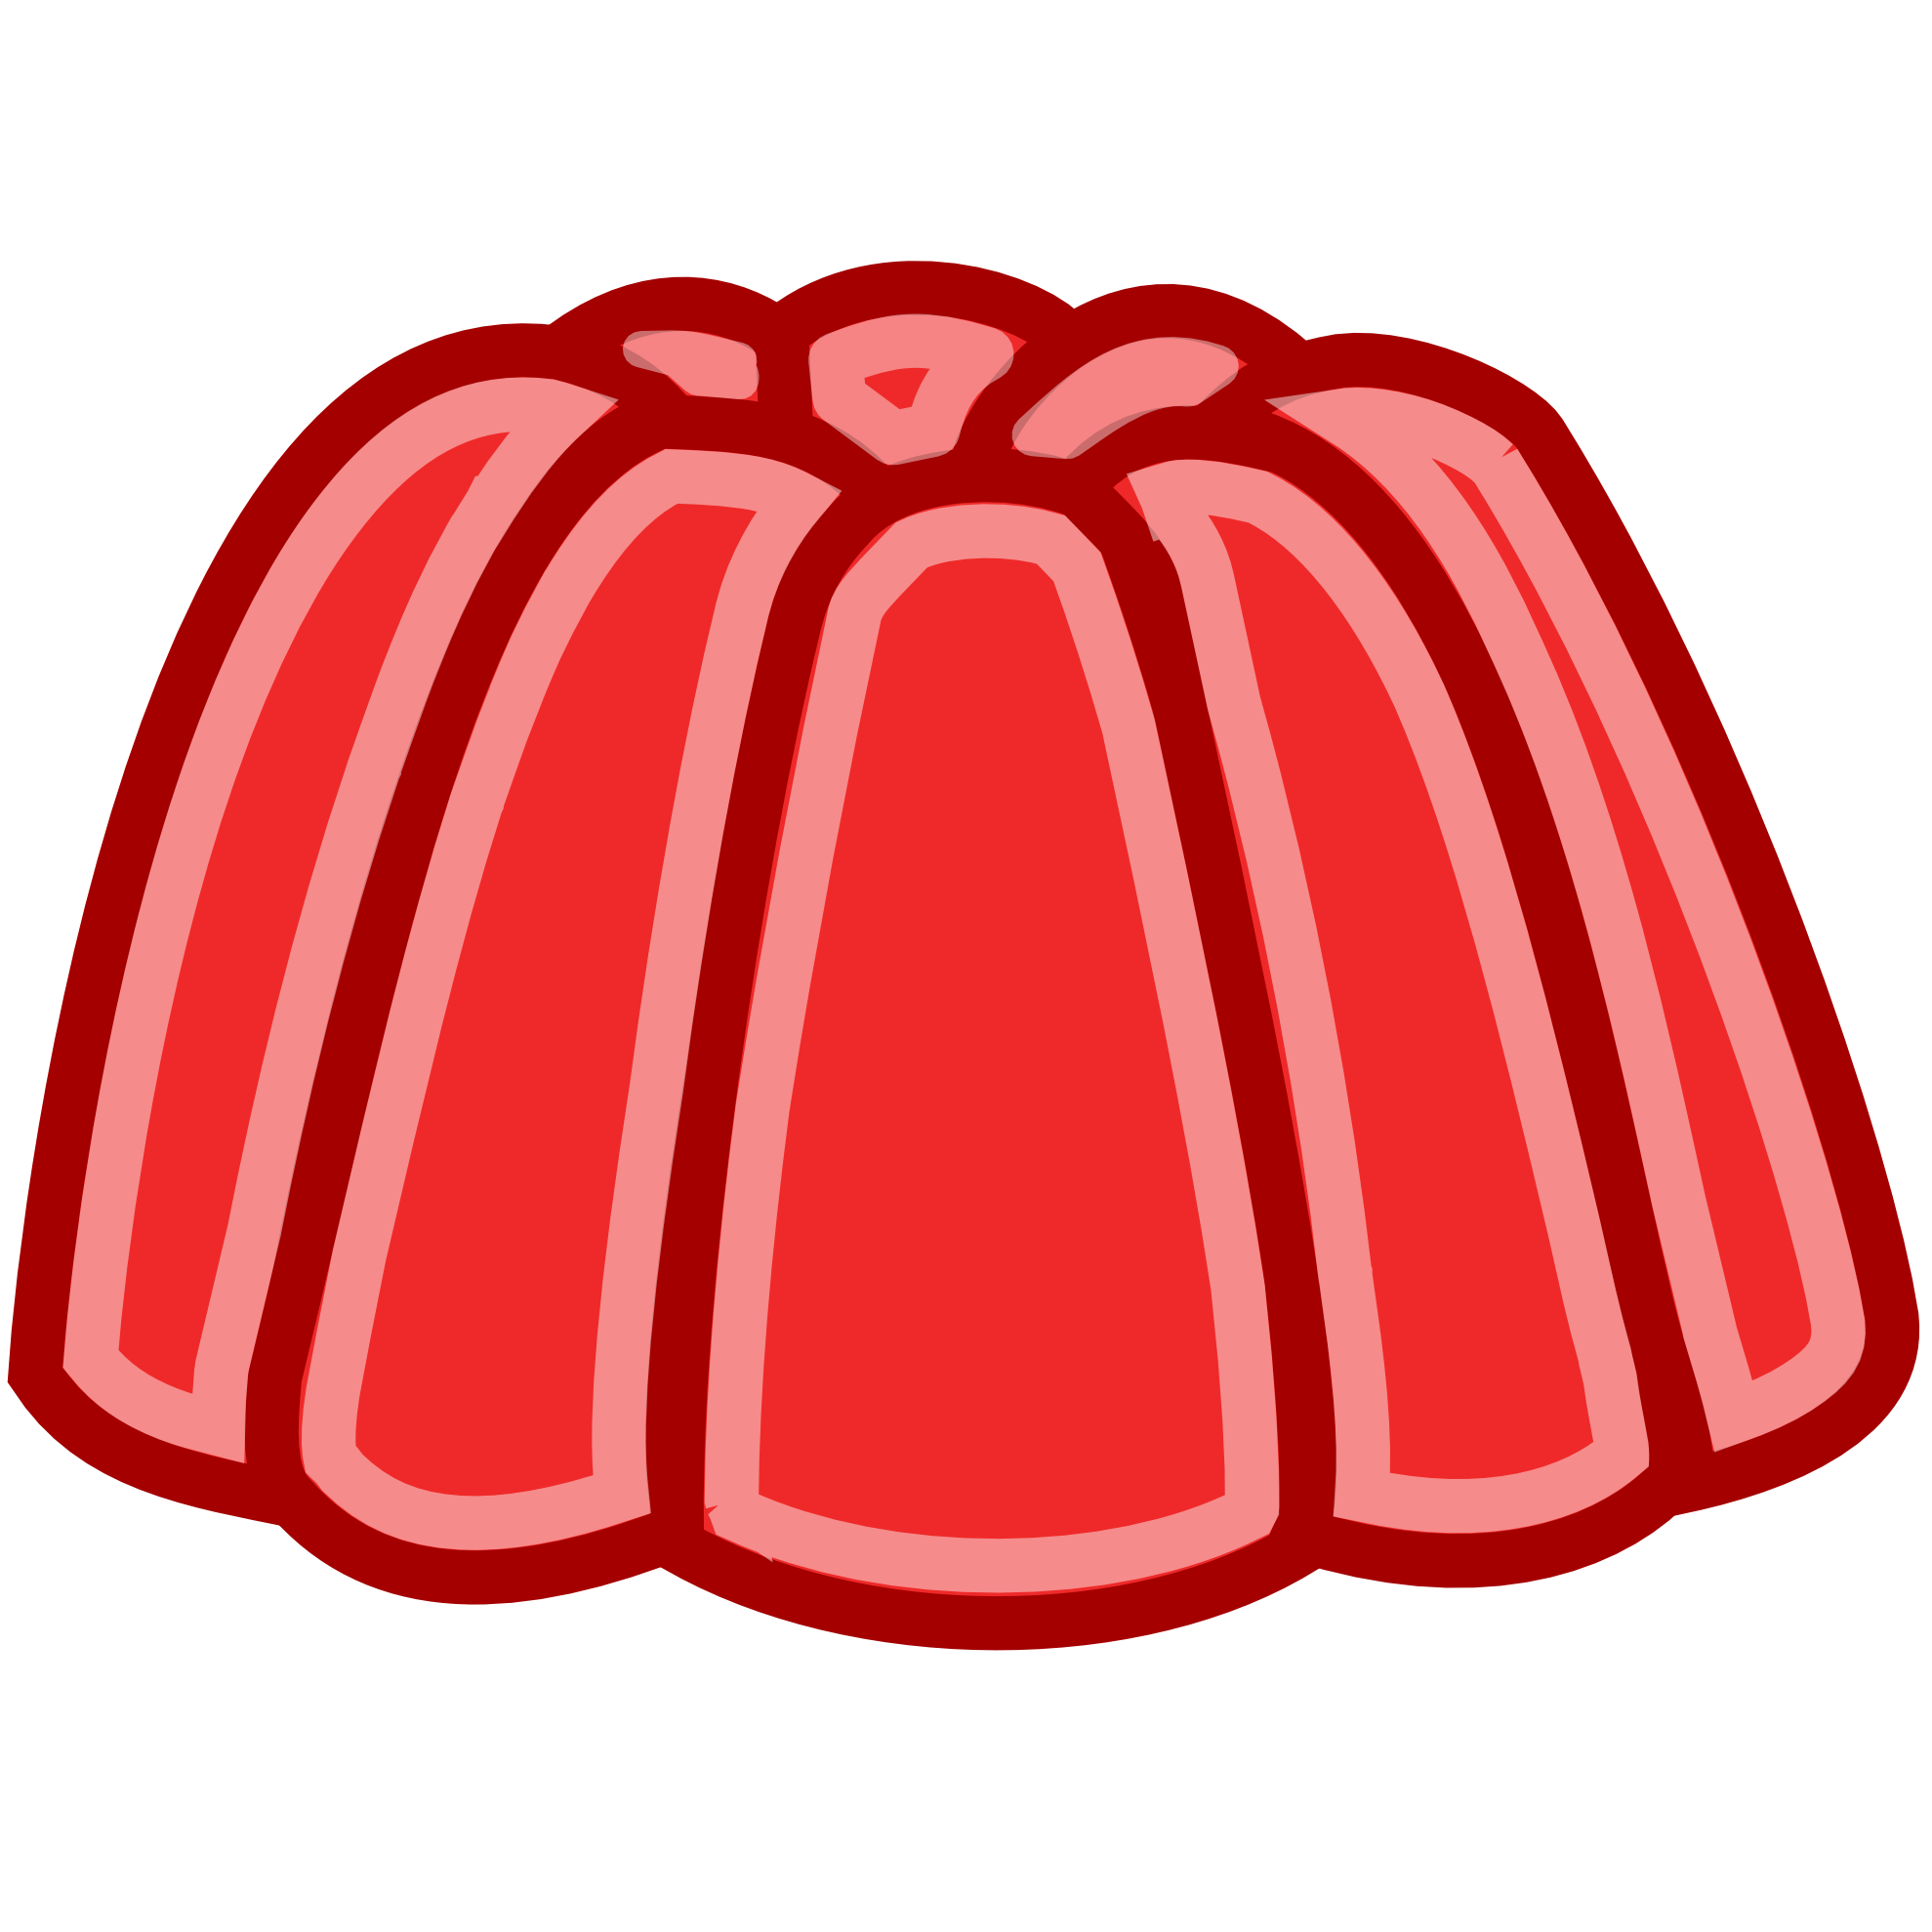 collection of png. Jelly clipart pudding jelly